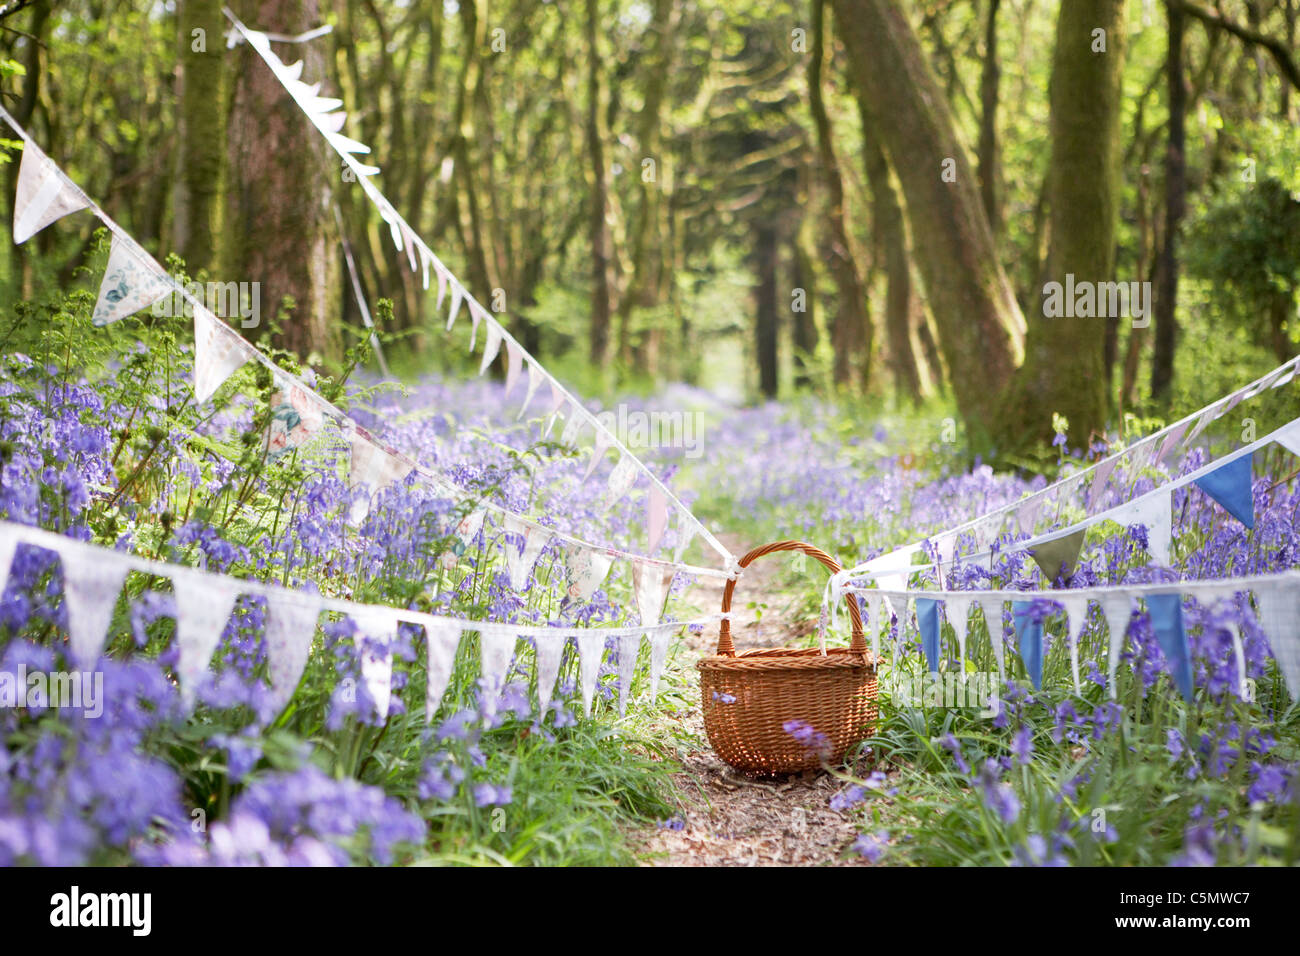 Vintage bunting and wicker basket along a path in Dorset springtime bluebell woodland, England, UK Stock Photo